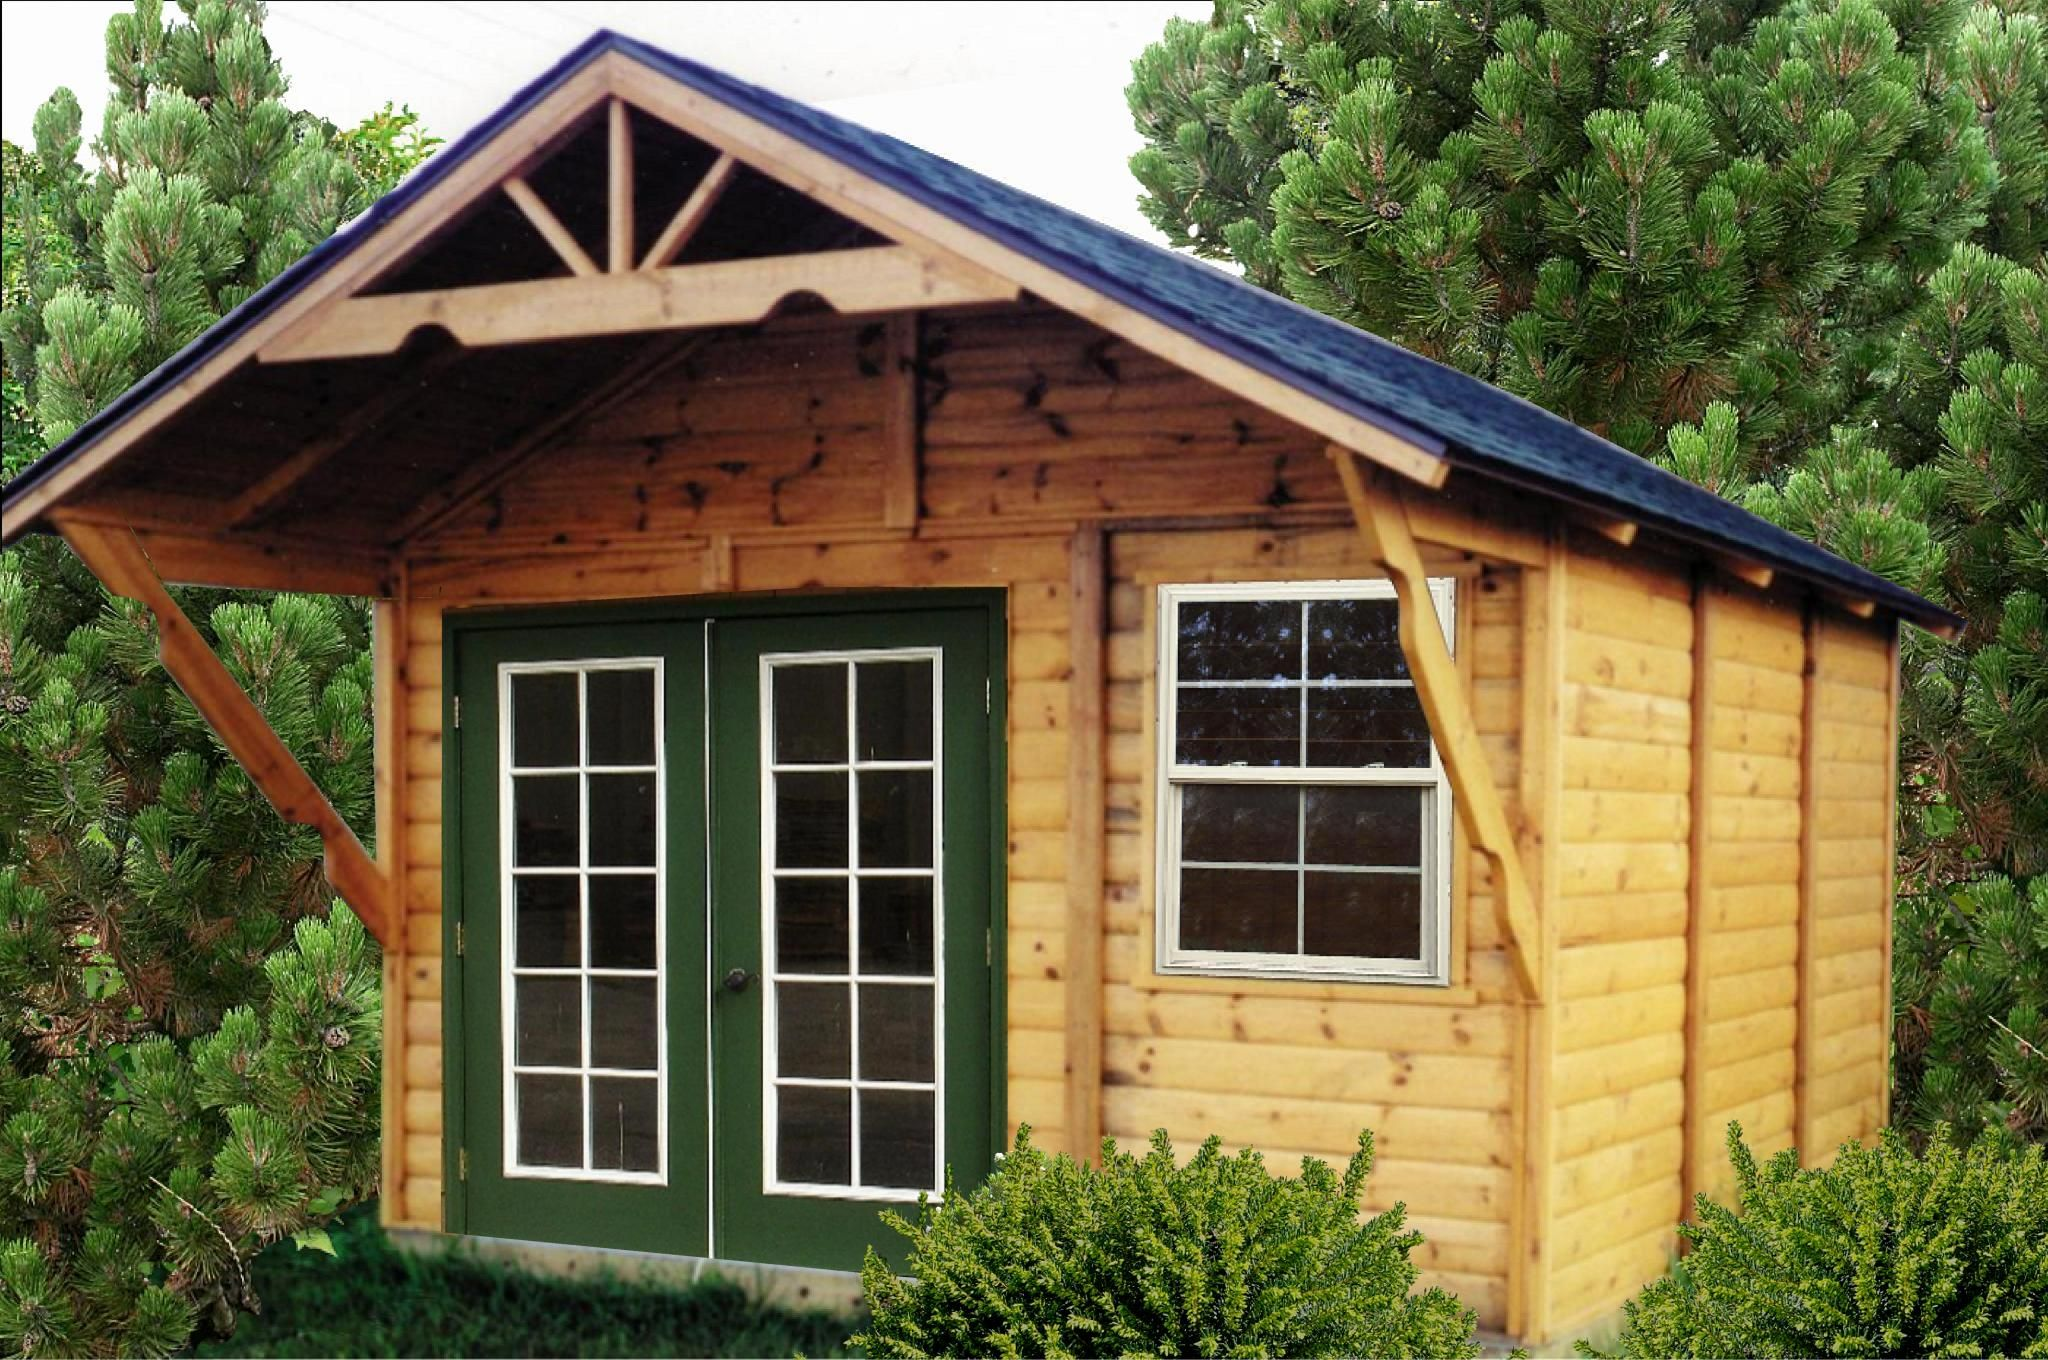 Garden shed ideas wooden storage shed plans home for Garden shed designs